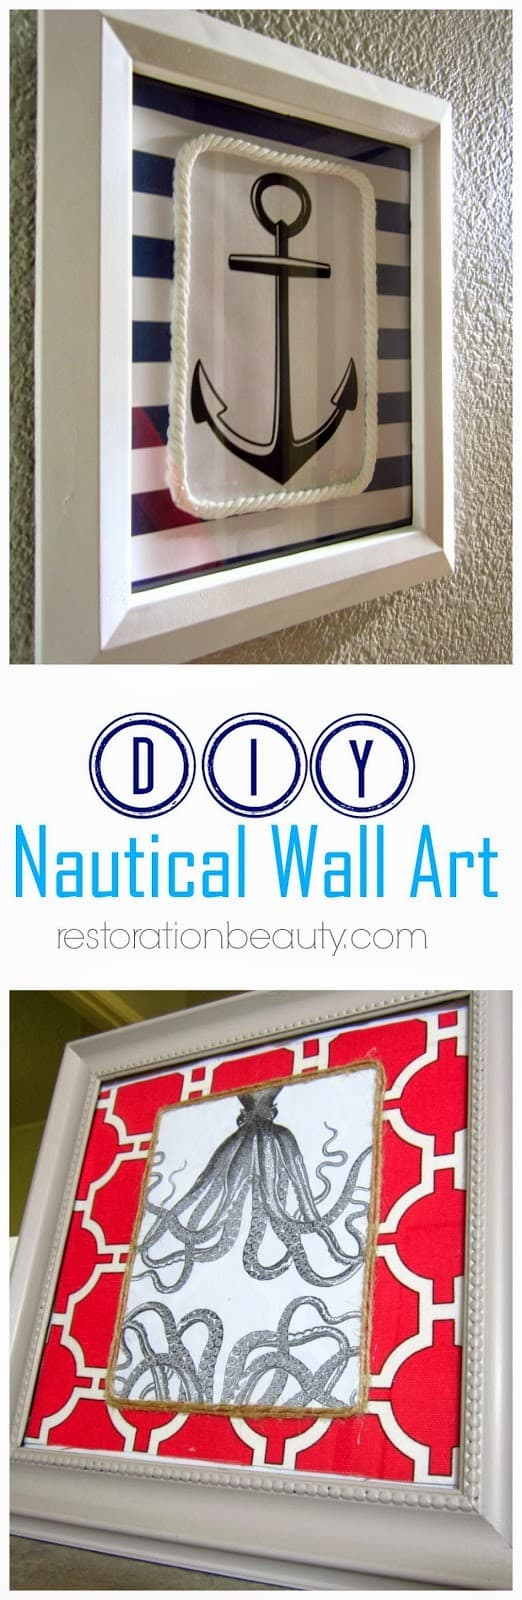 diy nautical wall art 10